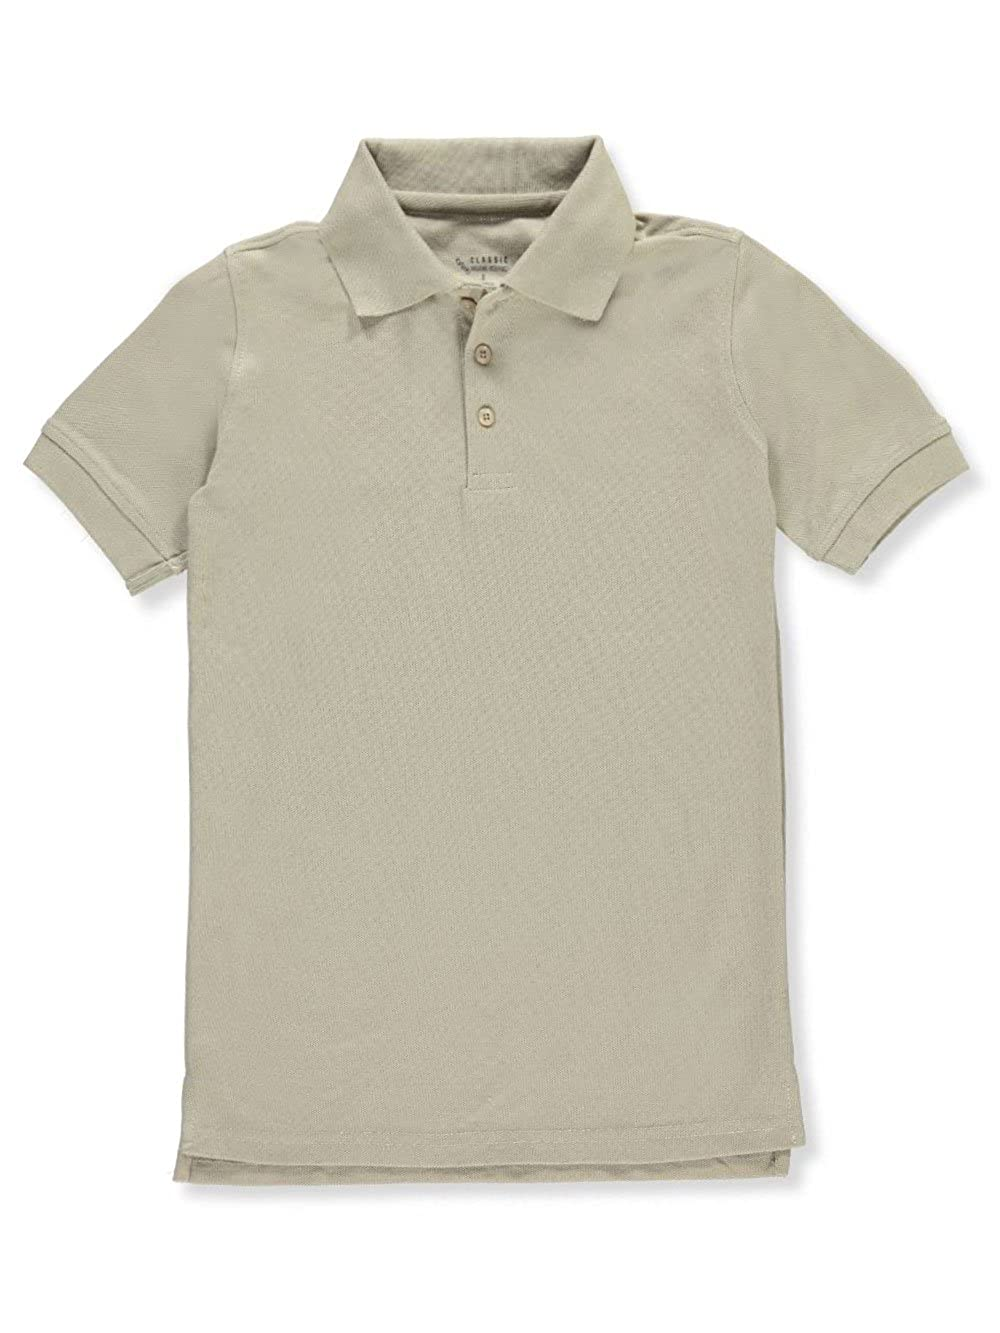 Classic School Uniform Little Boys' S/S Pique Polo - Khaki, 5